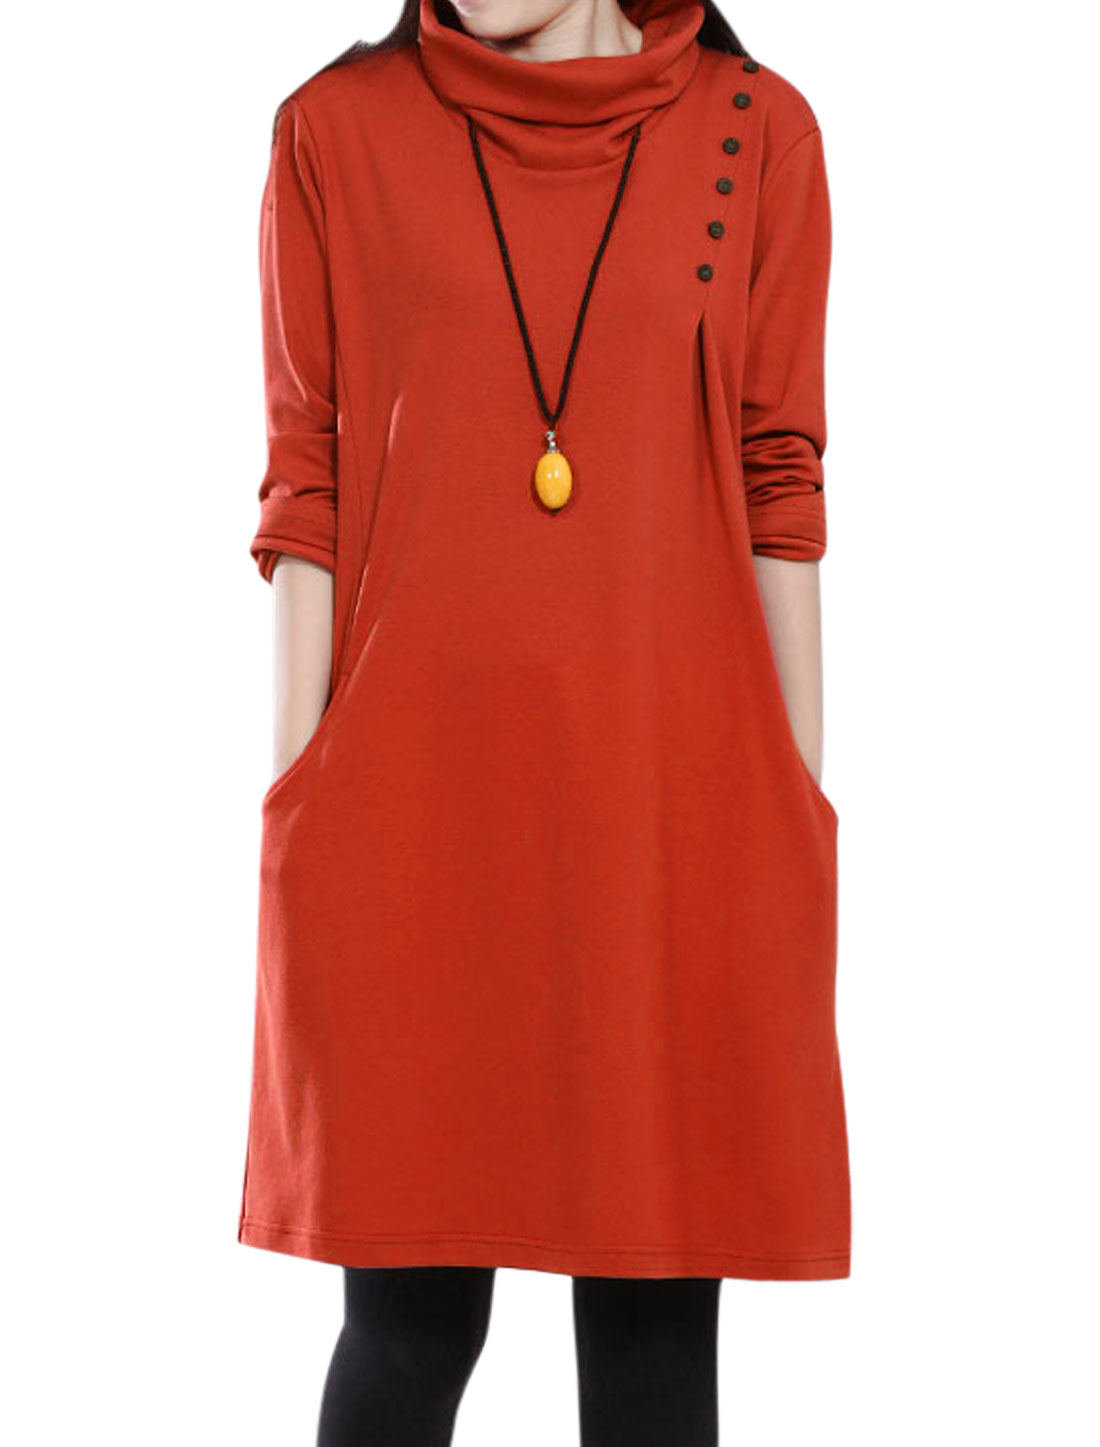 Ladies Orange Red Slipover Front Pockets Turtle Neck Loose Leisure Dress S